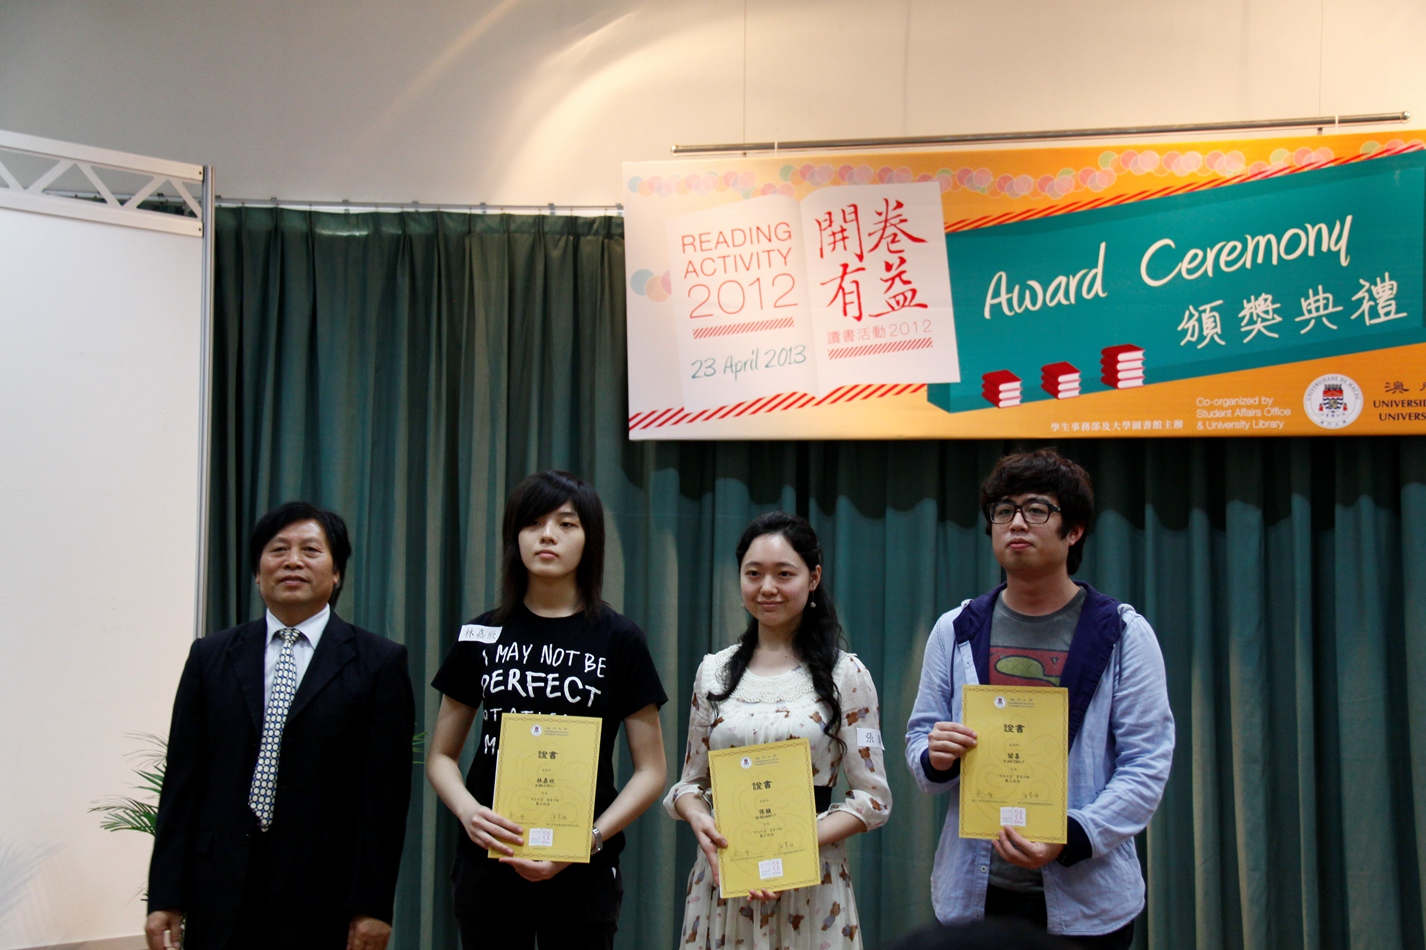 Group photo of Prof. Zhu Shoutong (1st from left) and winning students